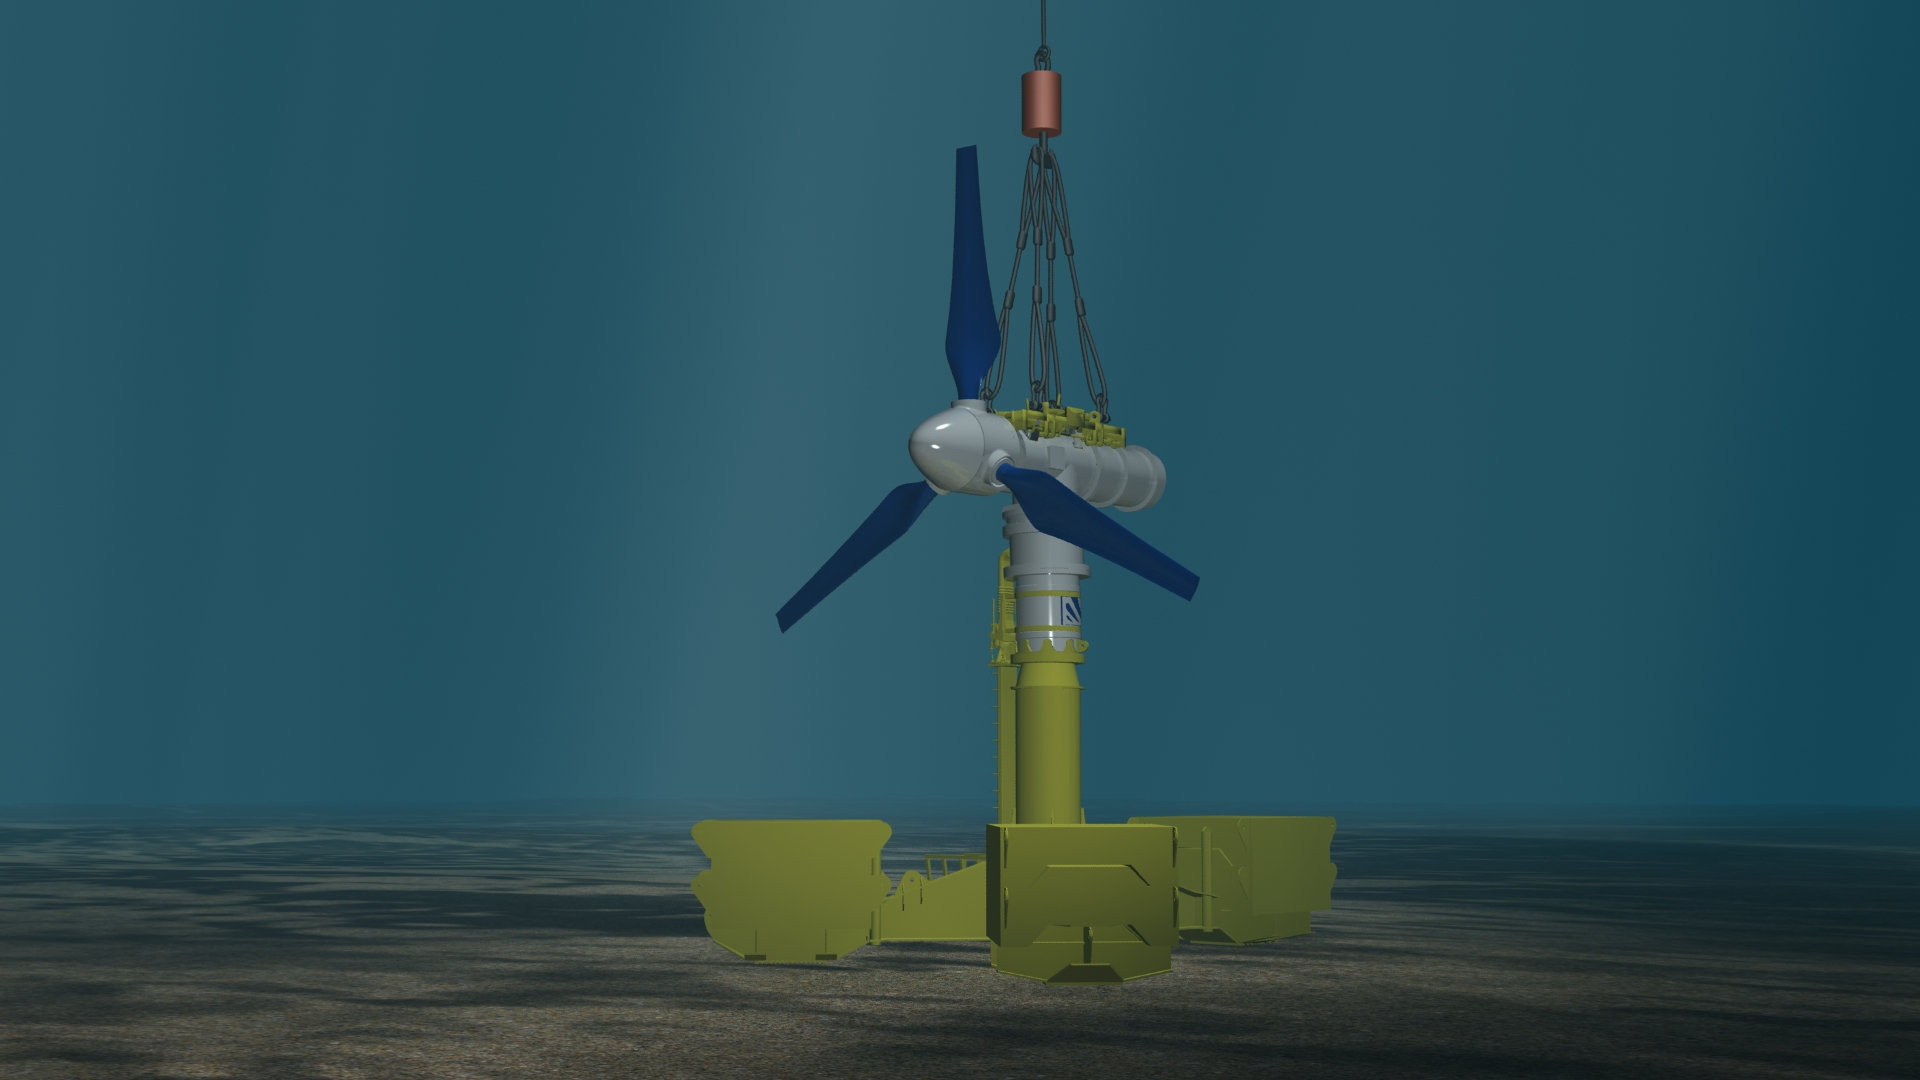 Figure 4 - The turbine rests on the base using a simple gravity-based mechanism, which requires no bolts or clamps. It's ready for operation within 60 minutes of leaving the deck of the vessel.